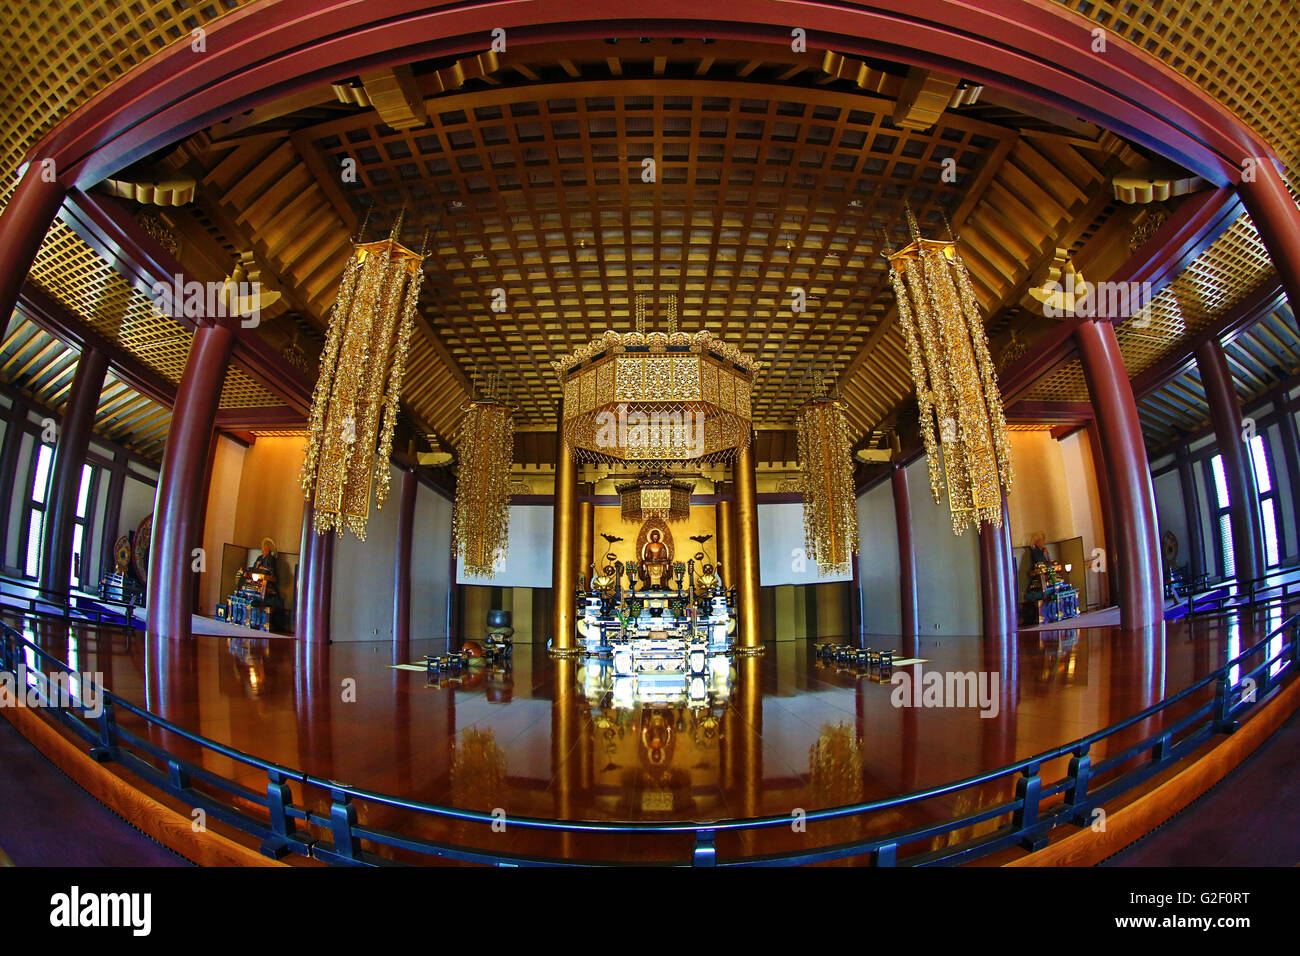 Interior of the Daiden (Hondo) the main hall of Zojoji Temple in Tokyo, Japan - Stock Image